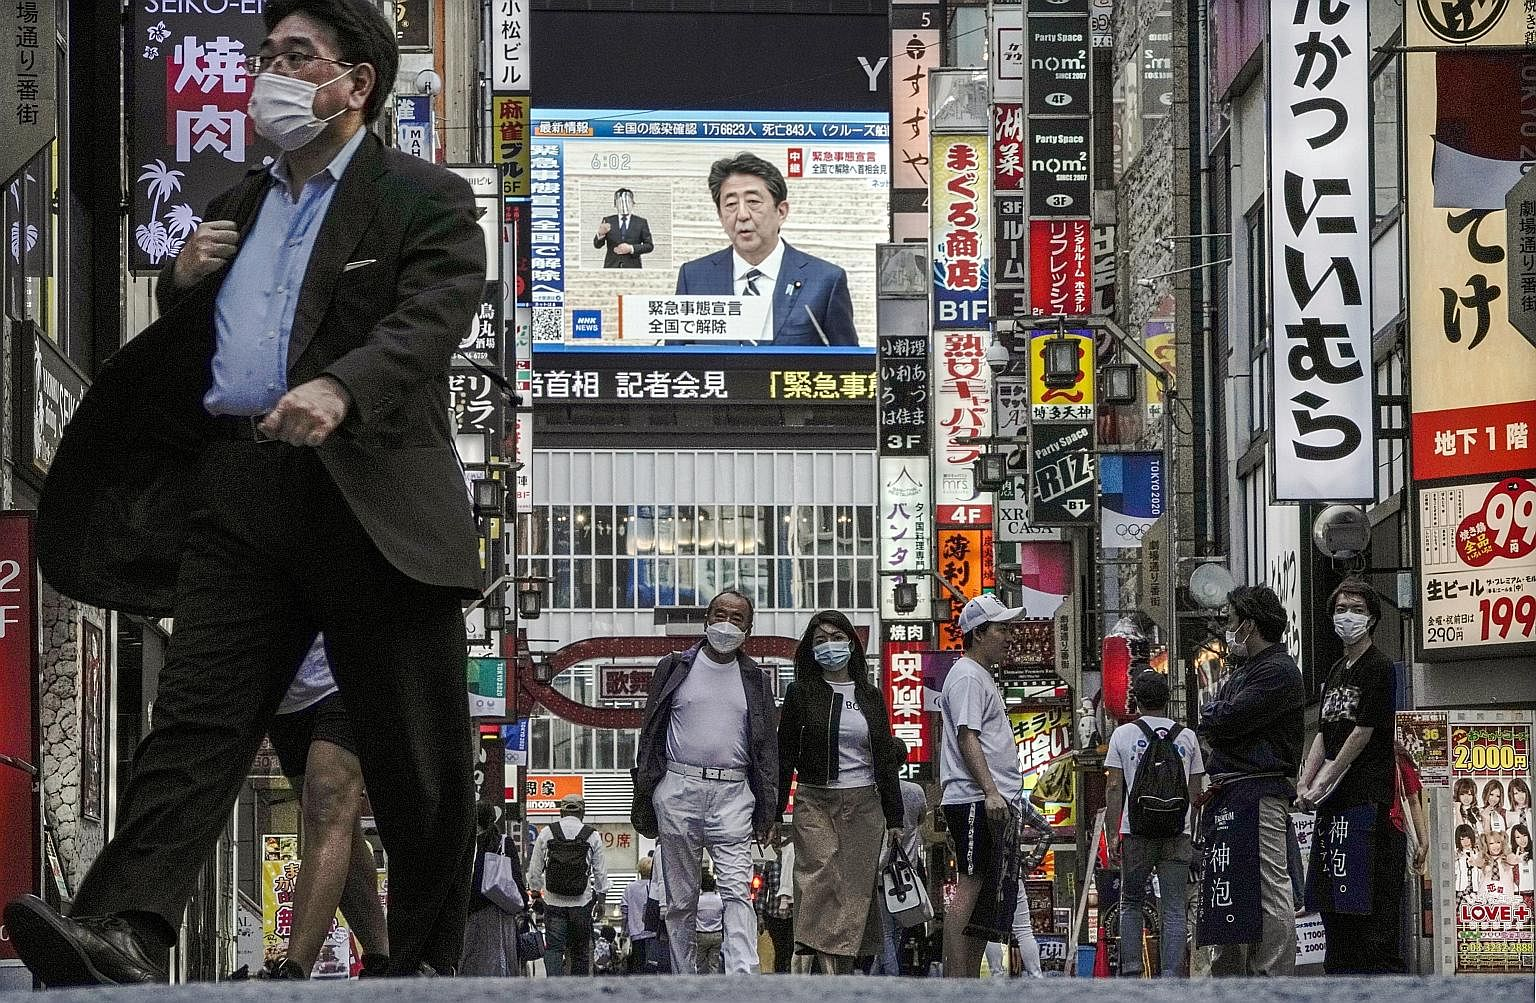 Japanese Prime Minister Shinzo Abe announced the end of a nationwide state of emergency in a live TV broadcast yesterday - seen here in Tokyo's Shinjuku area - as the number of coronavirus cases tailed off. He also announced plans for a second aid pa